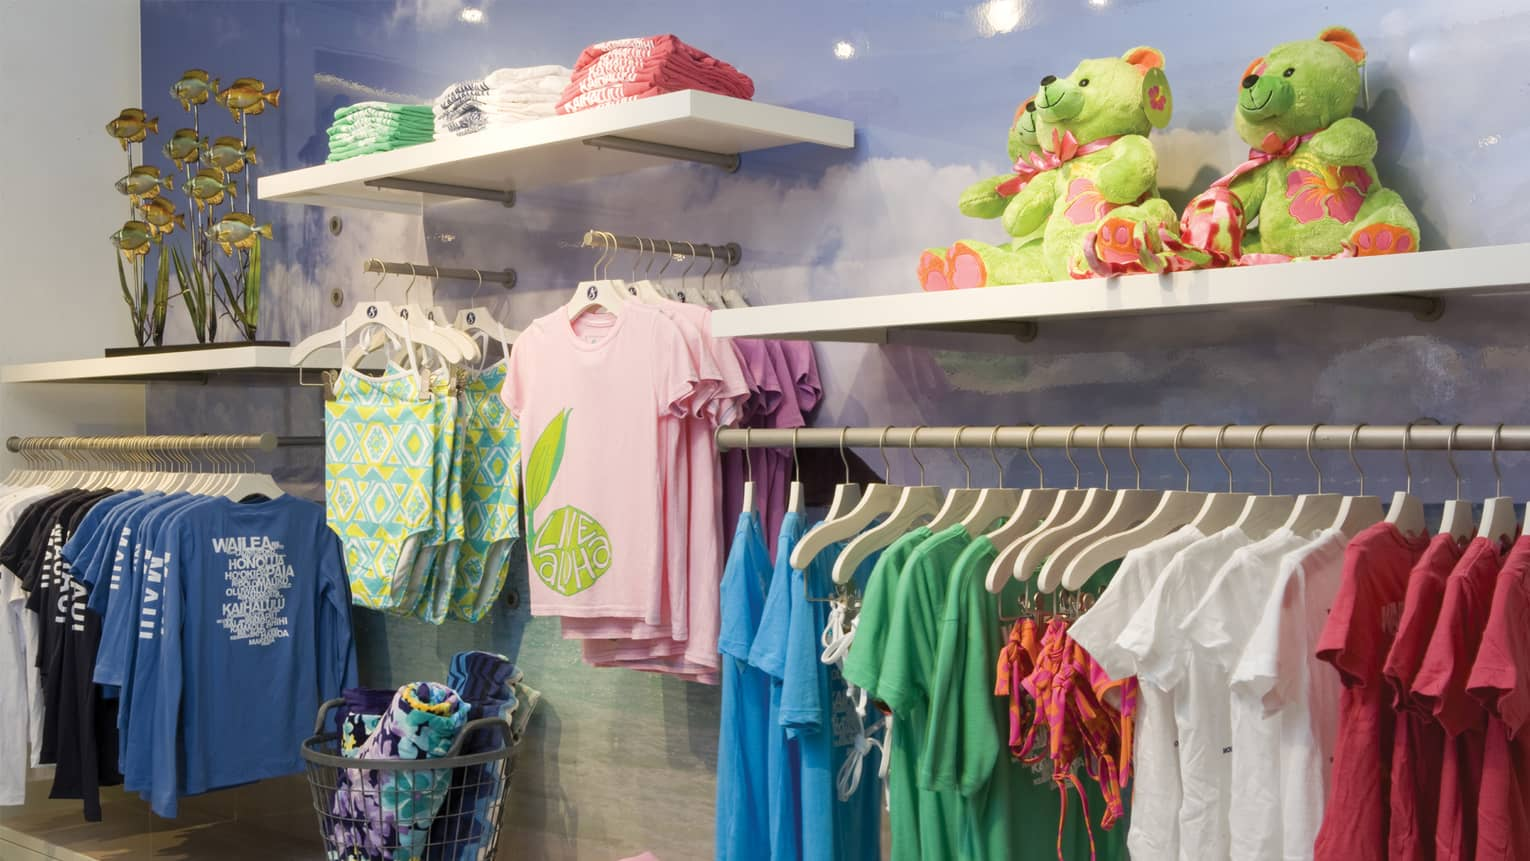 Wall of clothing boutique with racks of children's clothes on hangers, toys and towels